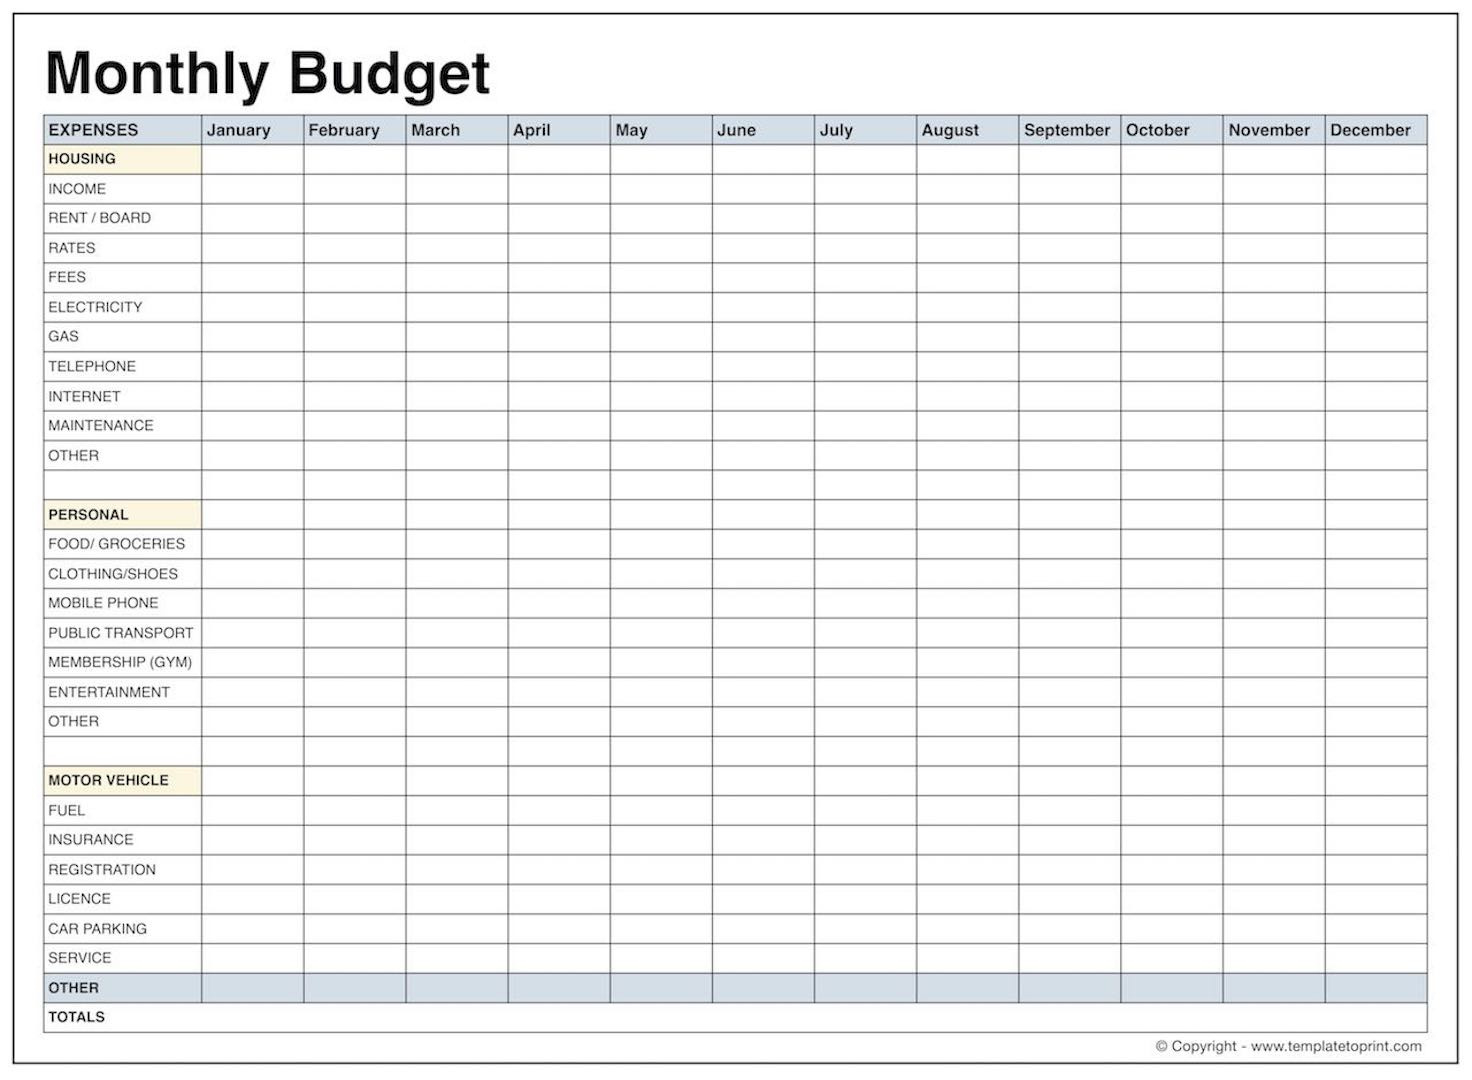 Daily Budget Spreadsheet Family Template Free E2 80 93 Collections | Daily Budget Worksheet Printable